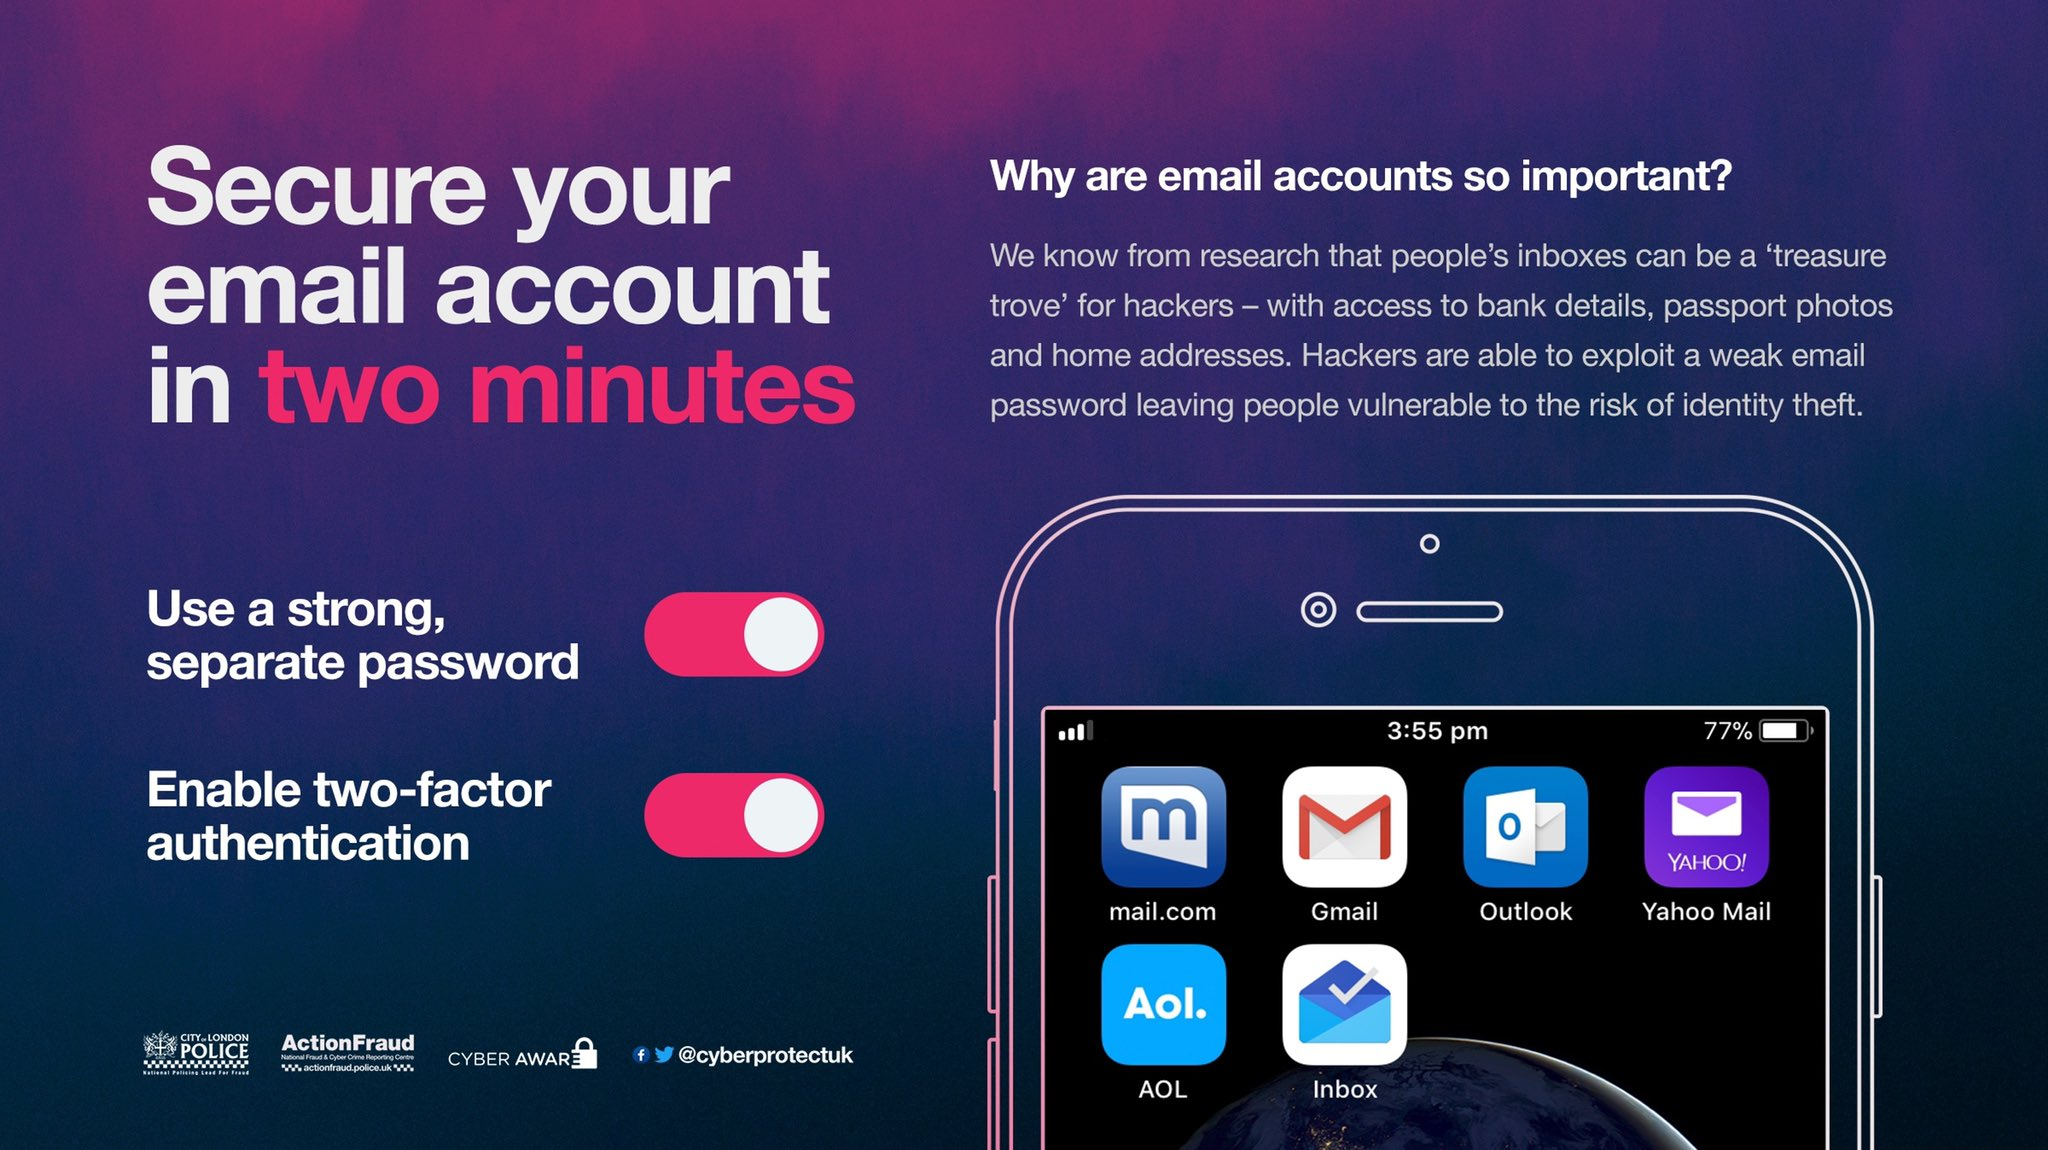 Is your email account secure?